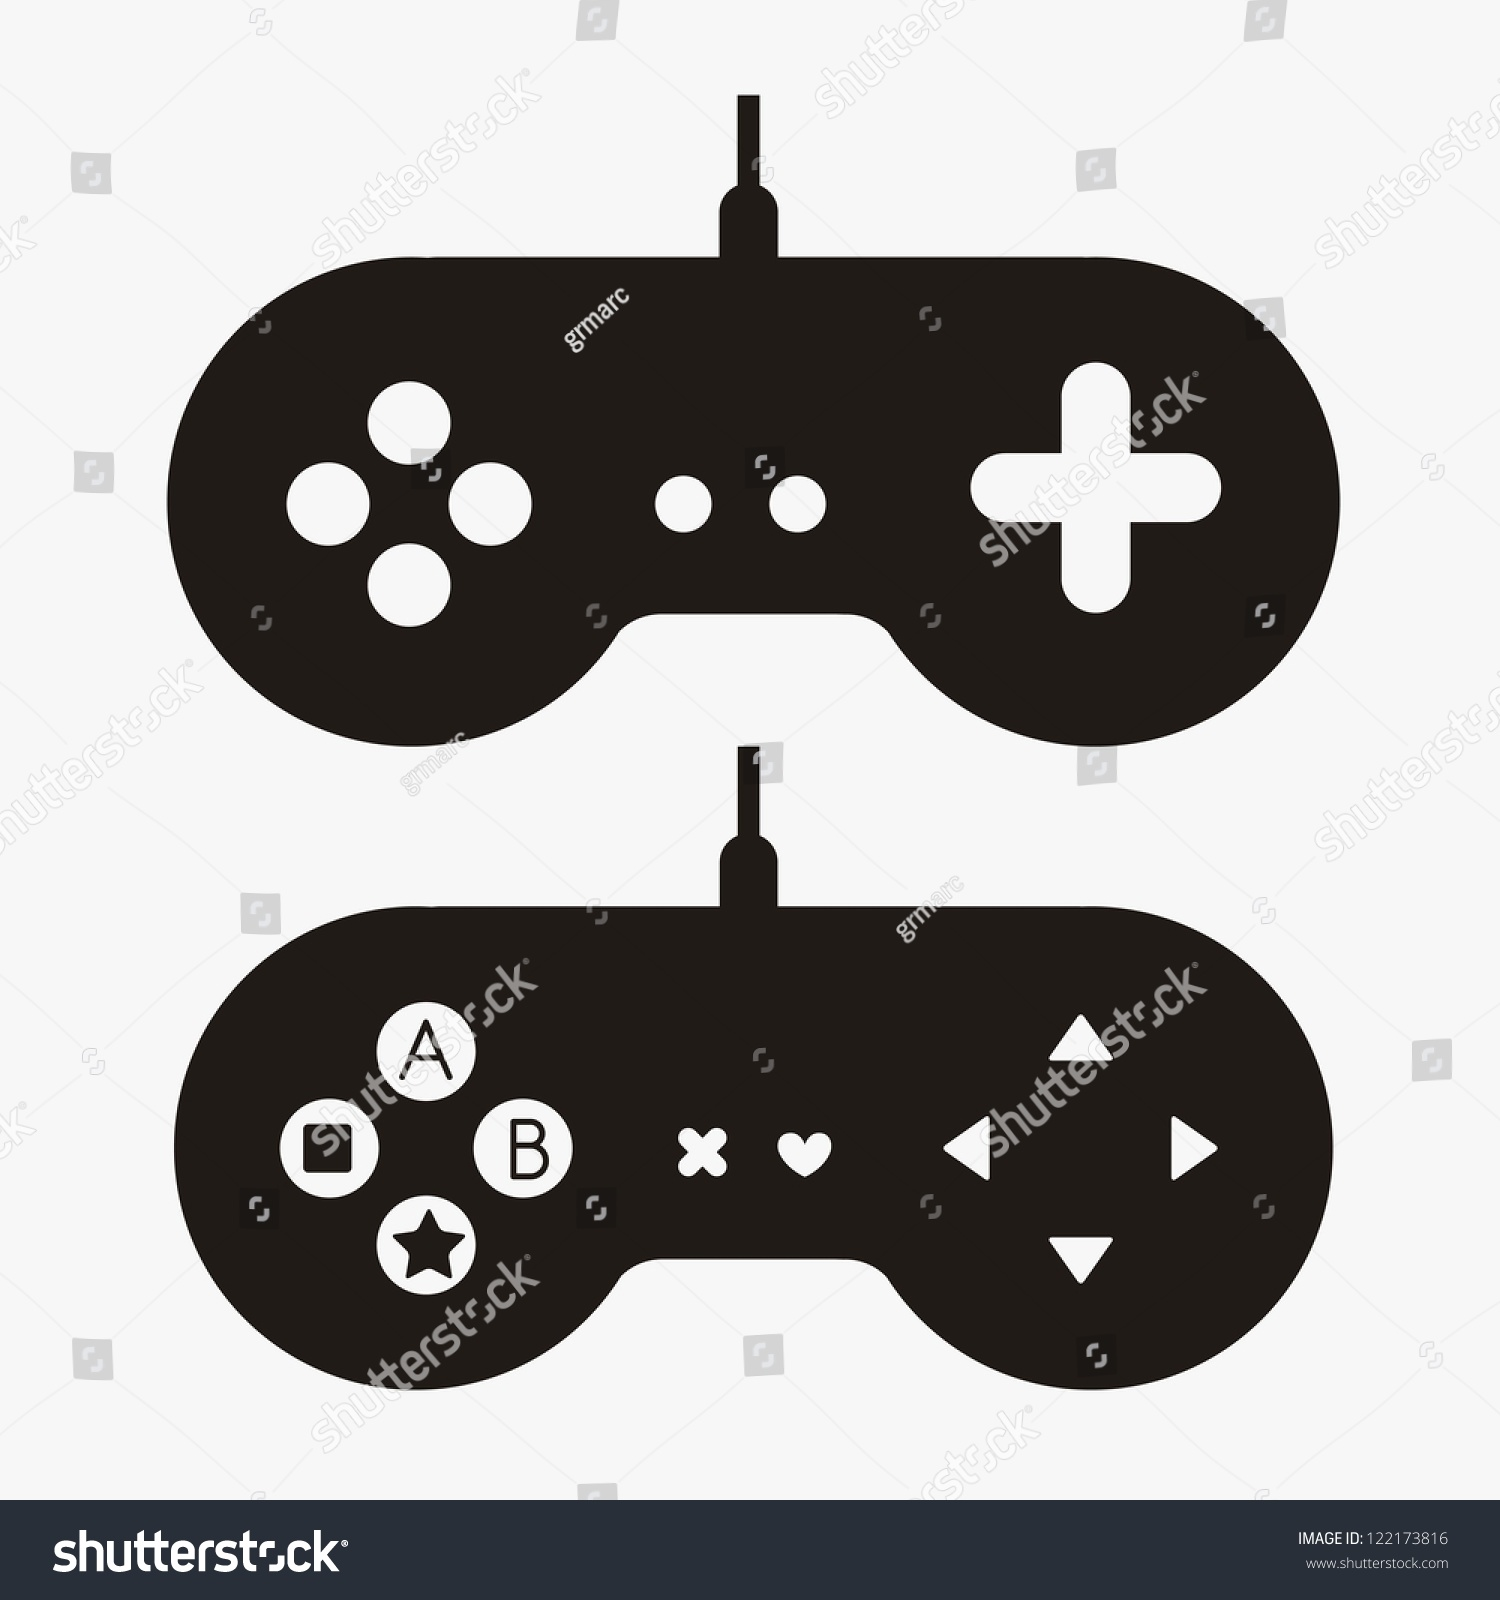 Illustration Game Controls Video Games Silhouettes Stock Vector